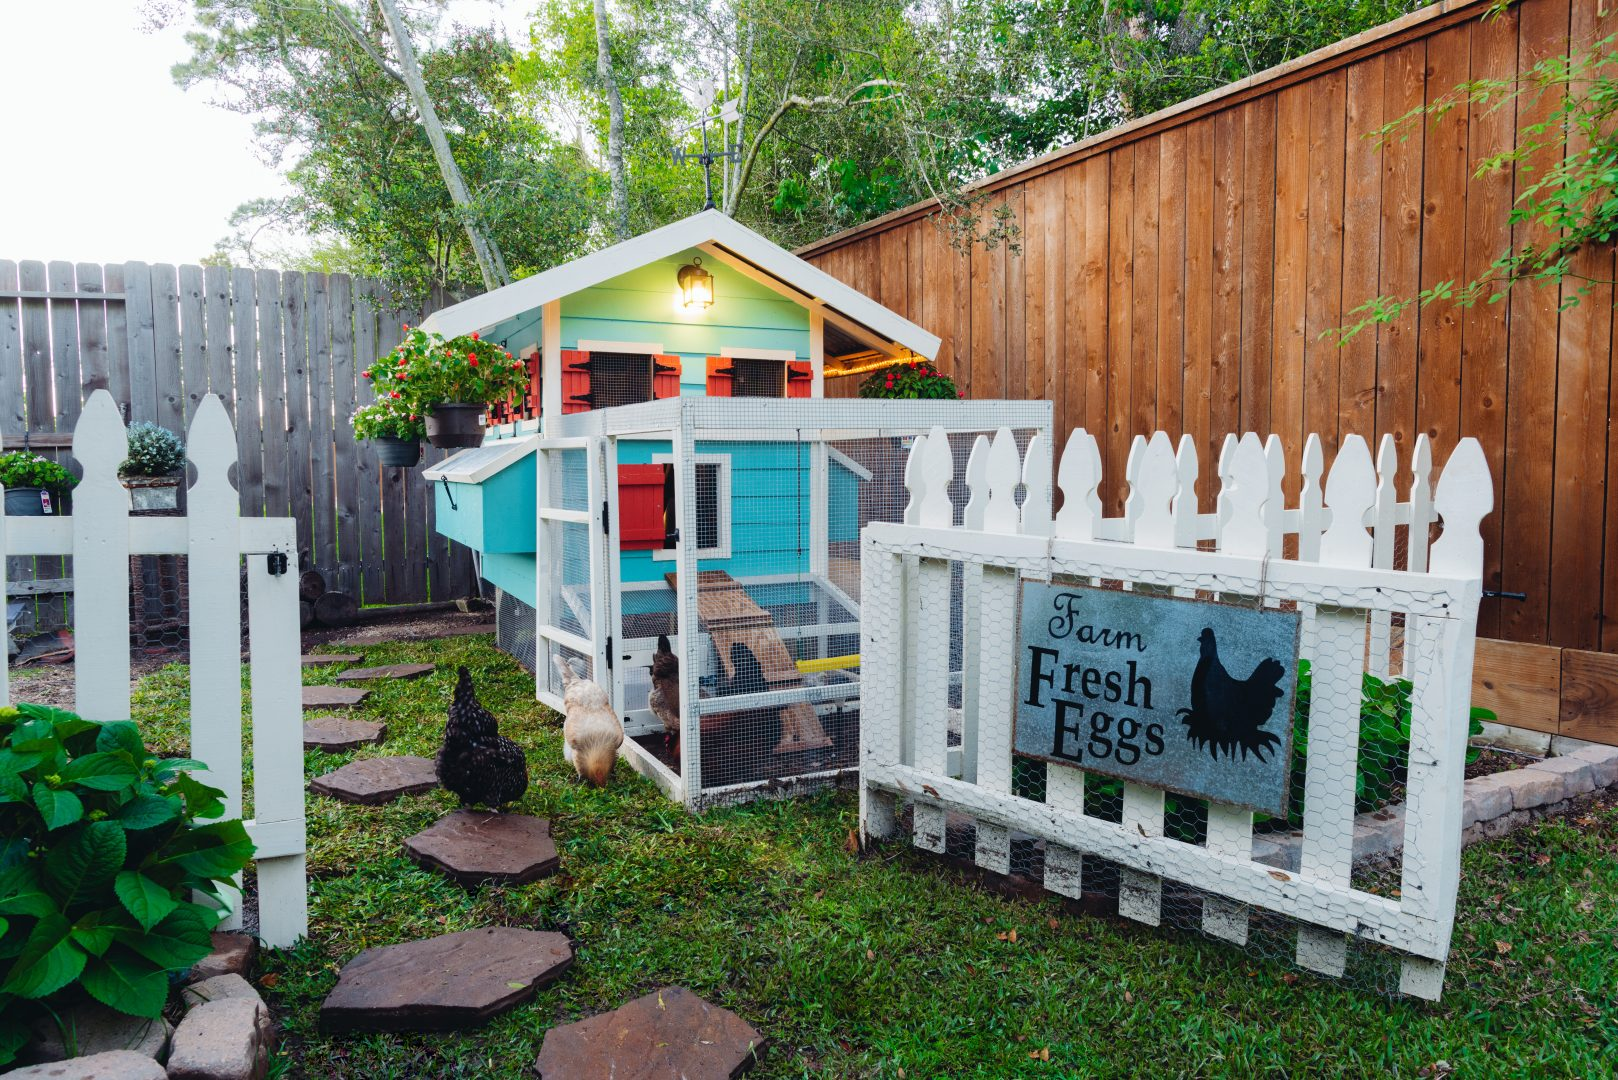 Best Backyard Chicken Coop – The Chick Mansion